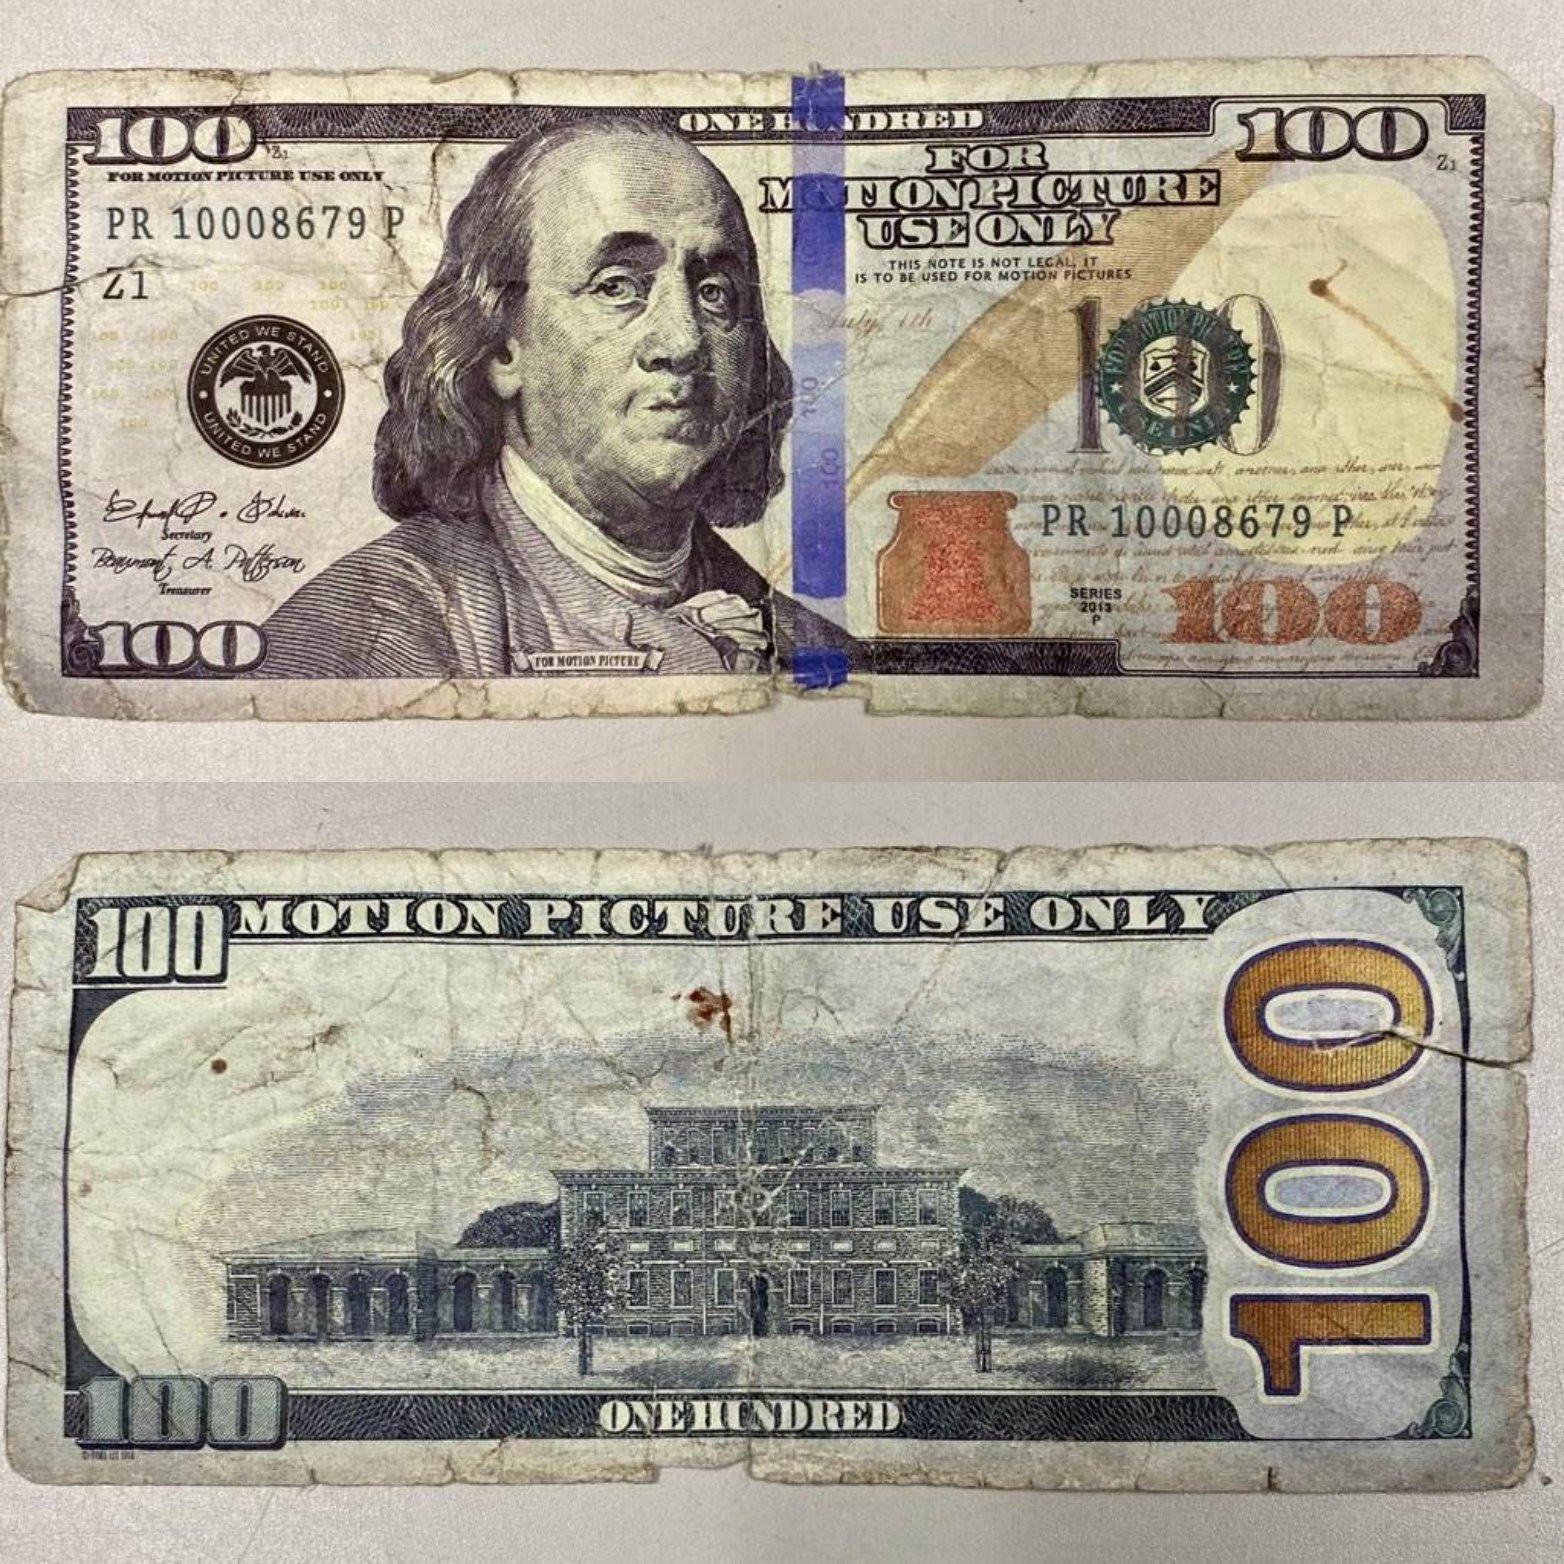 New Jersey man used fake $100 bill with 'For Motion Picture Use Only' on it to pay clerk at gas station: cops